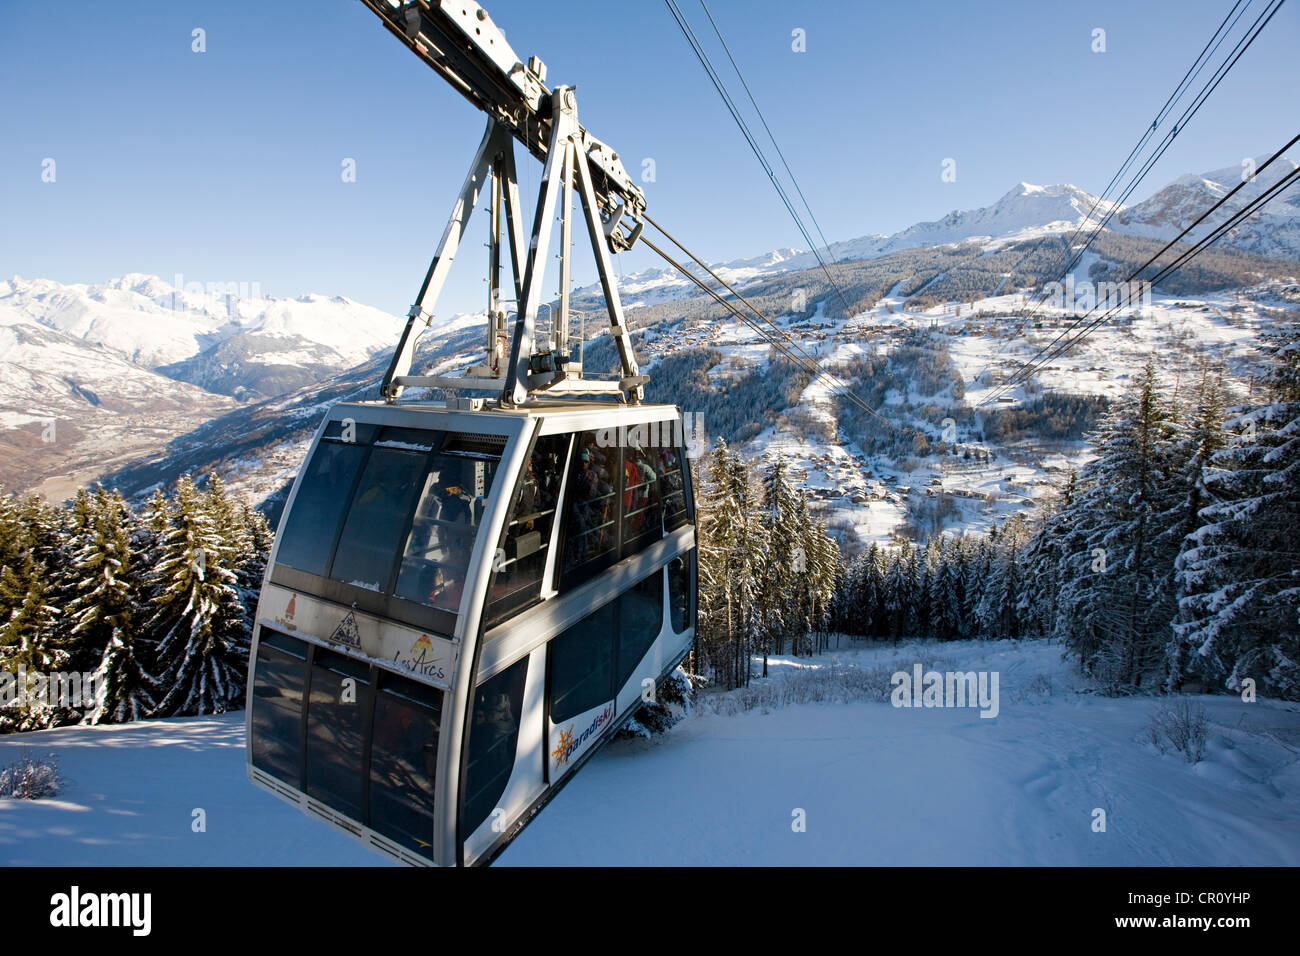 France Savoie les Coches paradiski cabin of Vanoise Express linking with Peisey Nancroix in background view over Stock Photo